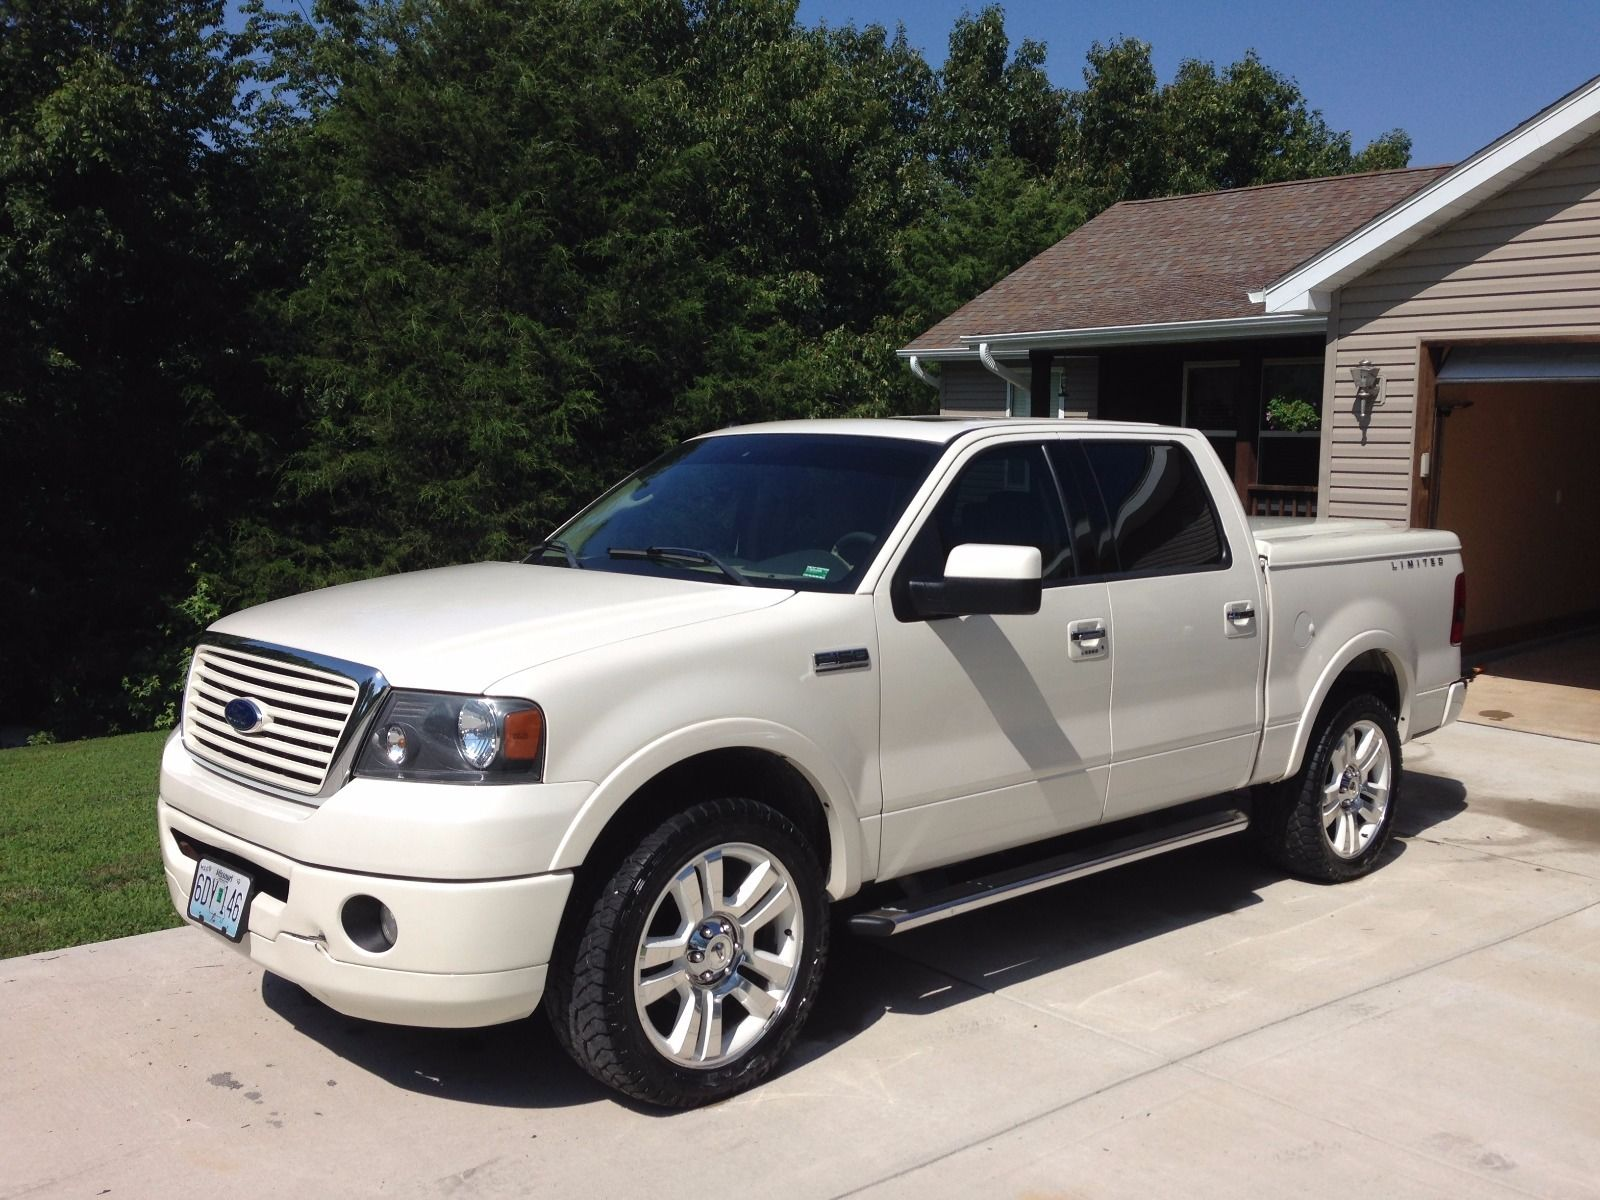 mint condition 2008 ford f 150 limited crew cab for sale. Black Bedroom Furniture Sets. Home Design Ideas